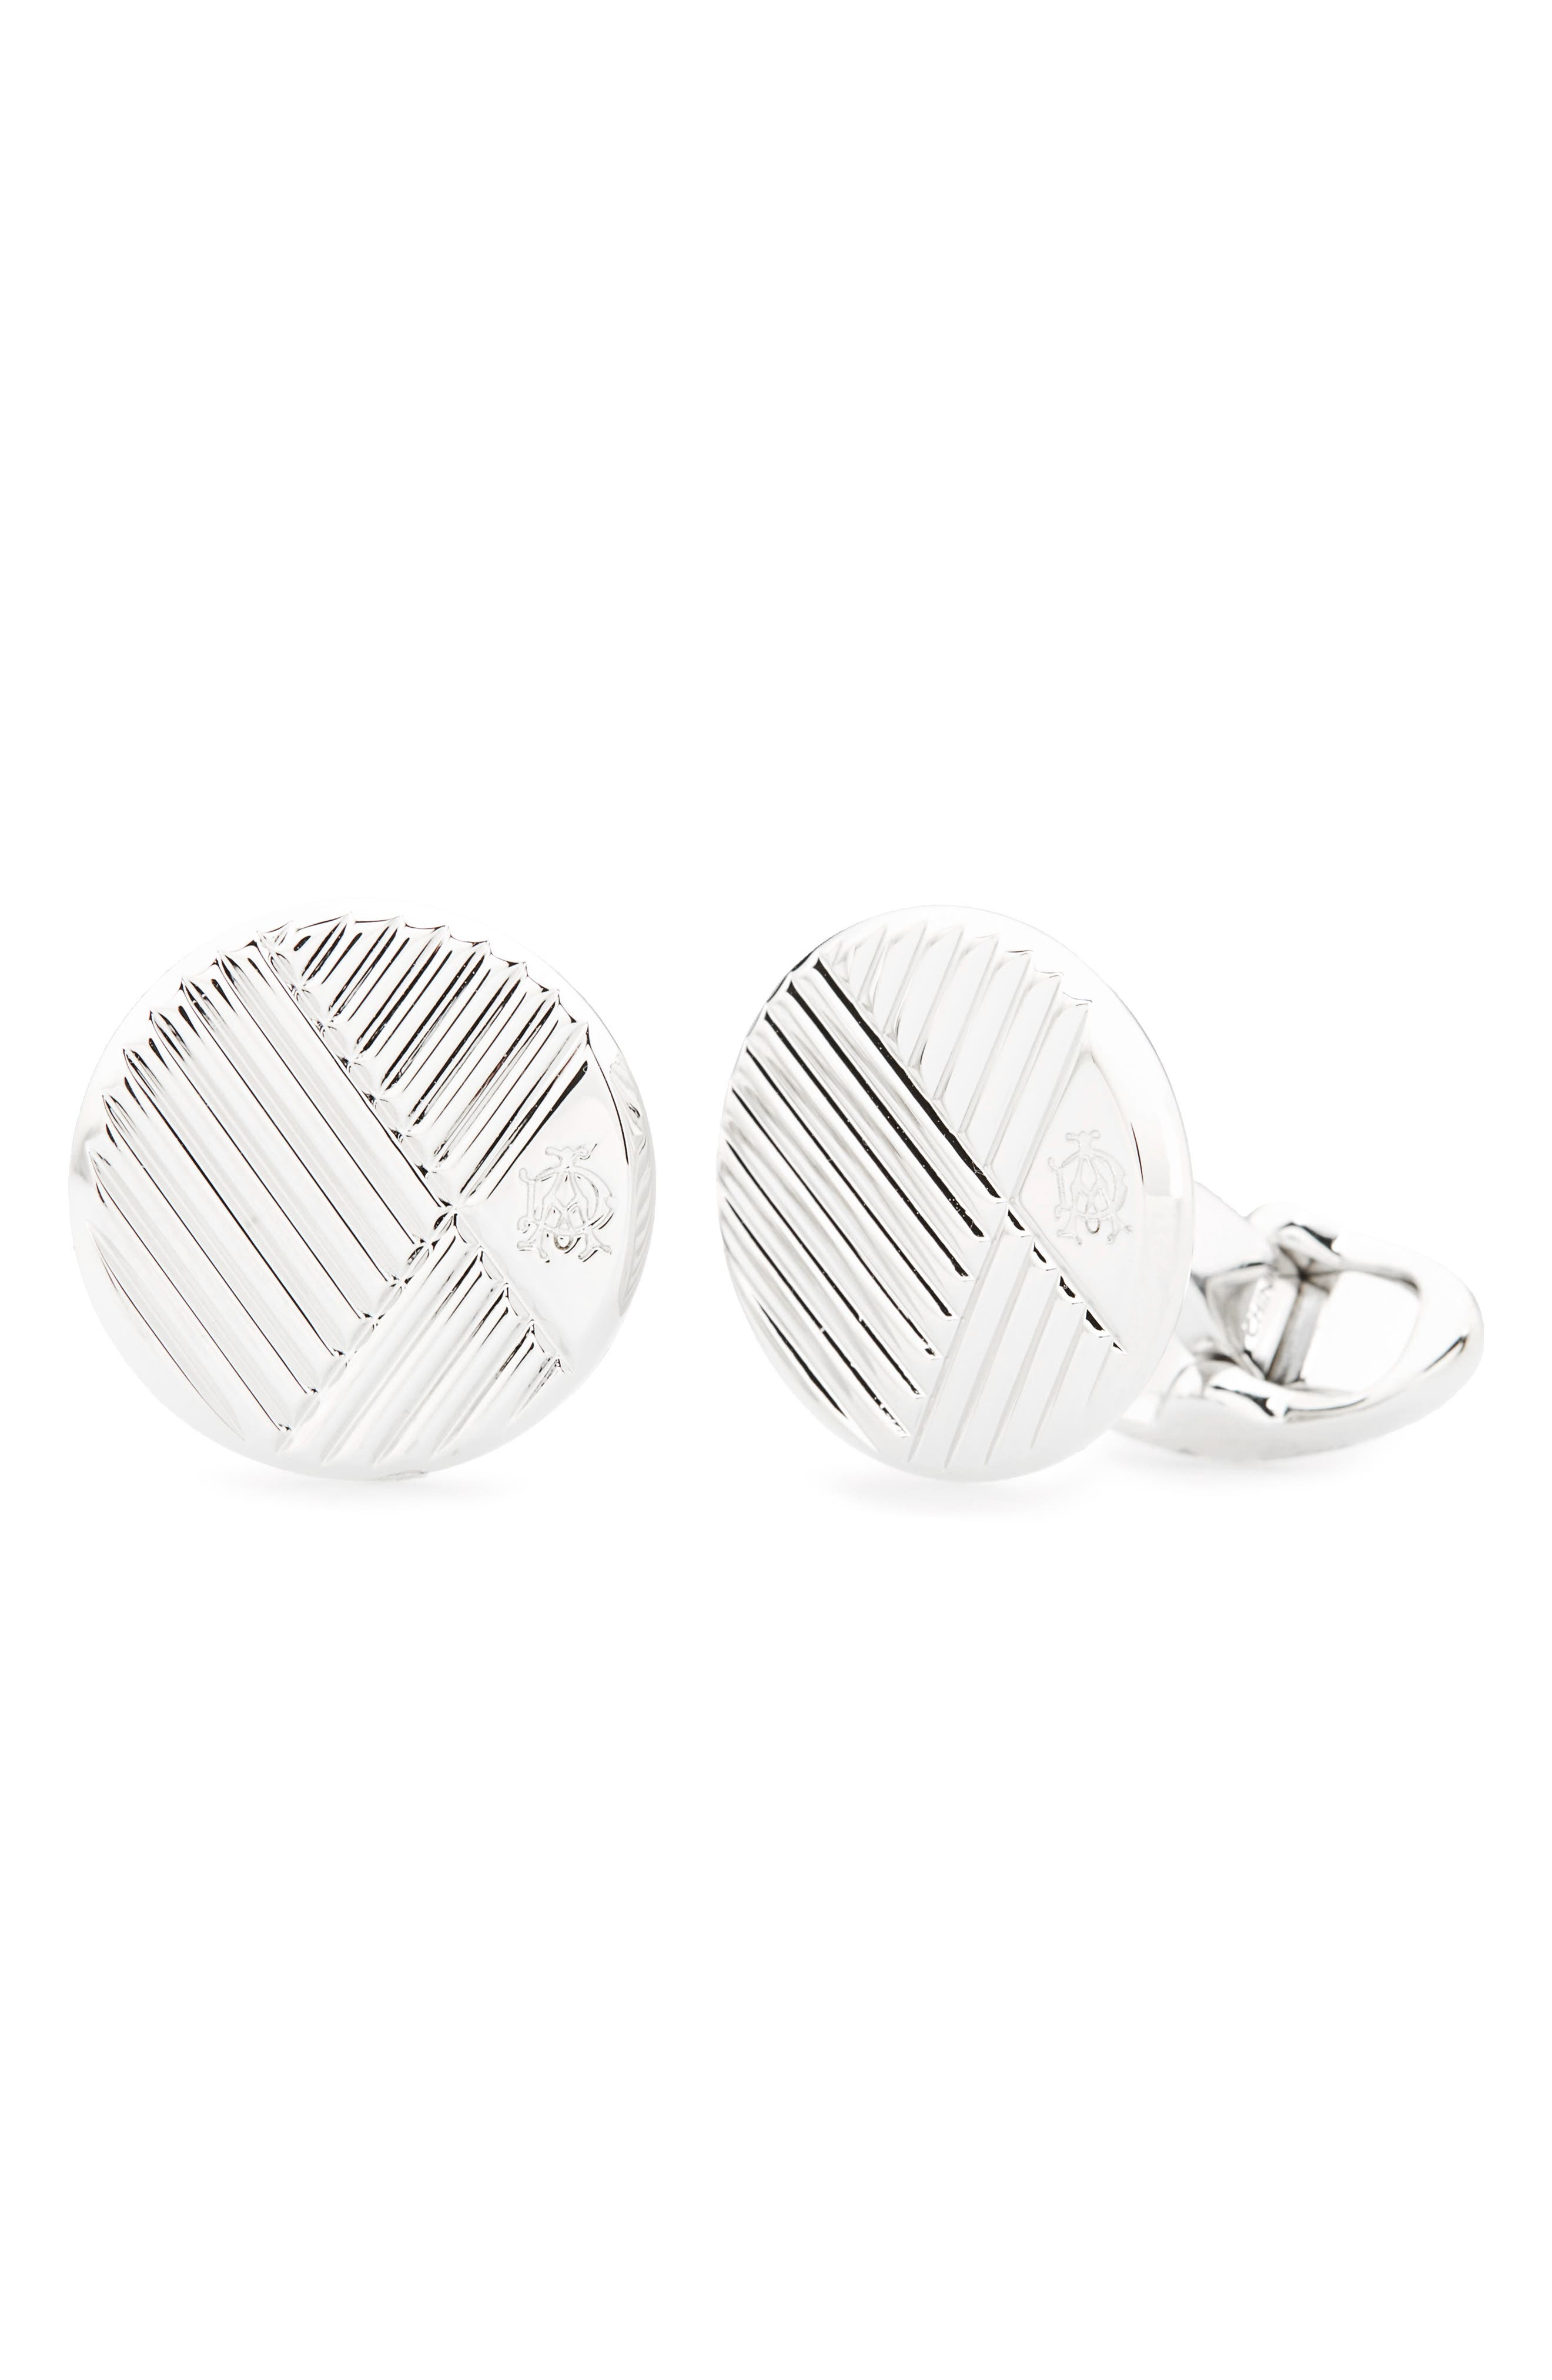 Dunhill Round Diagonal Cuff Links